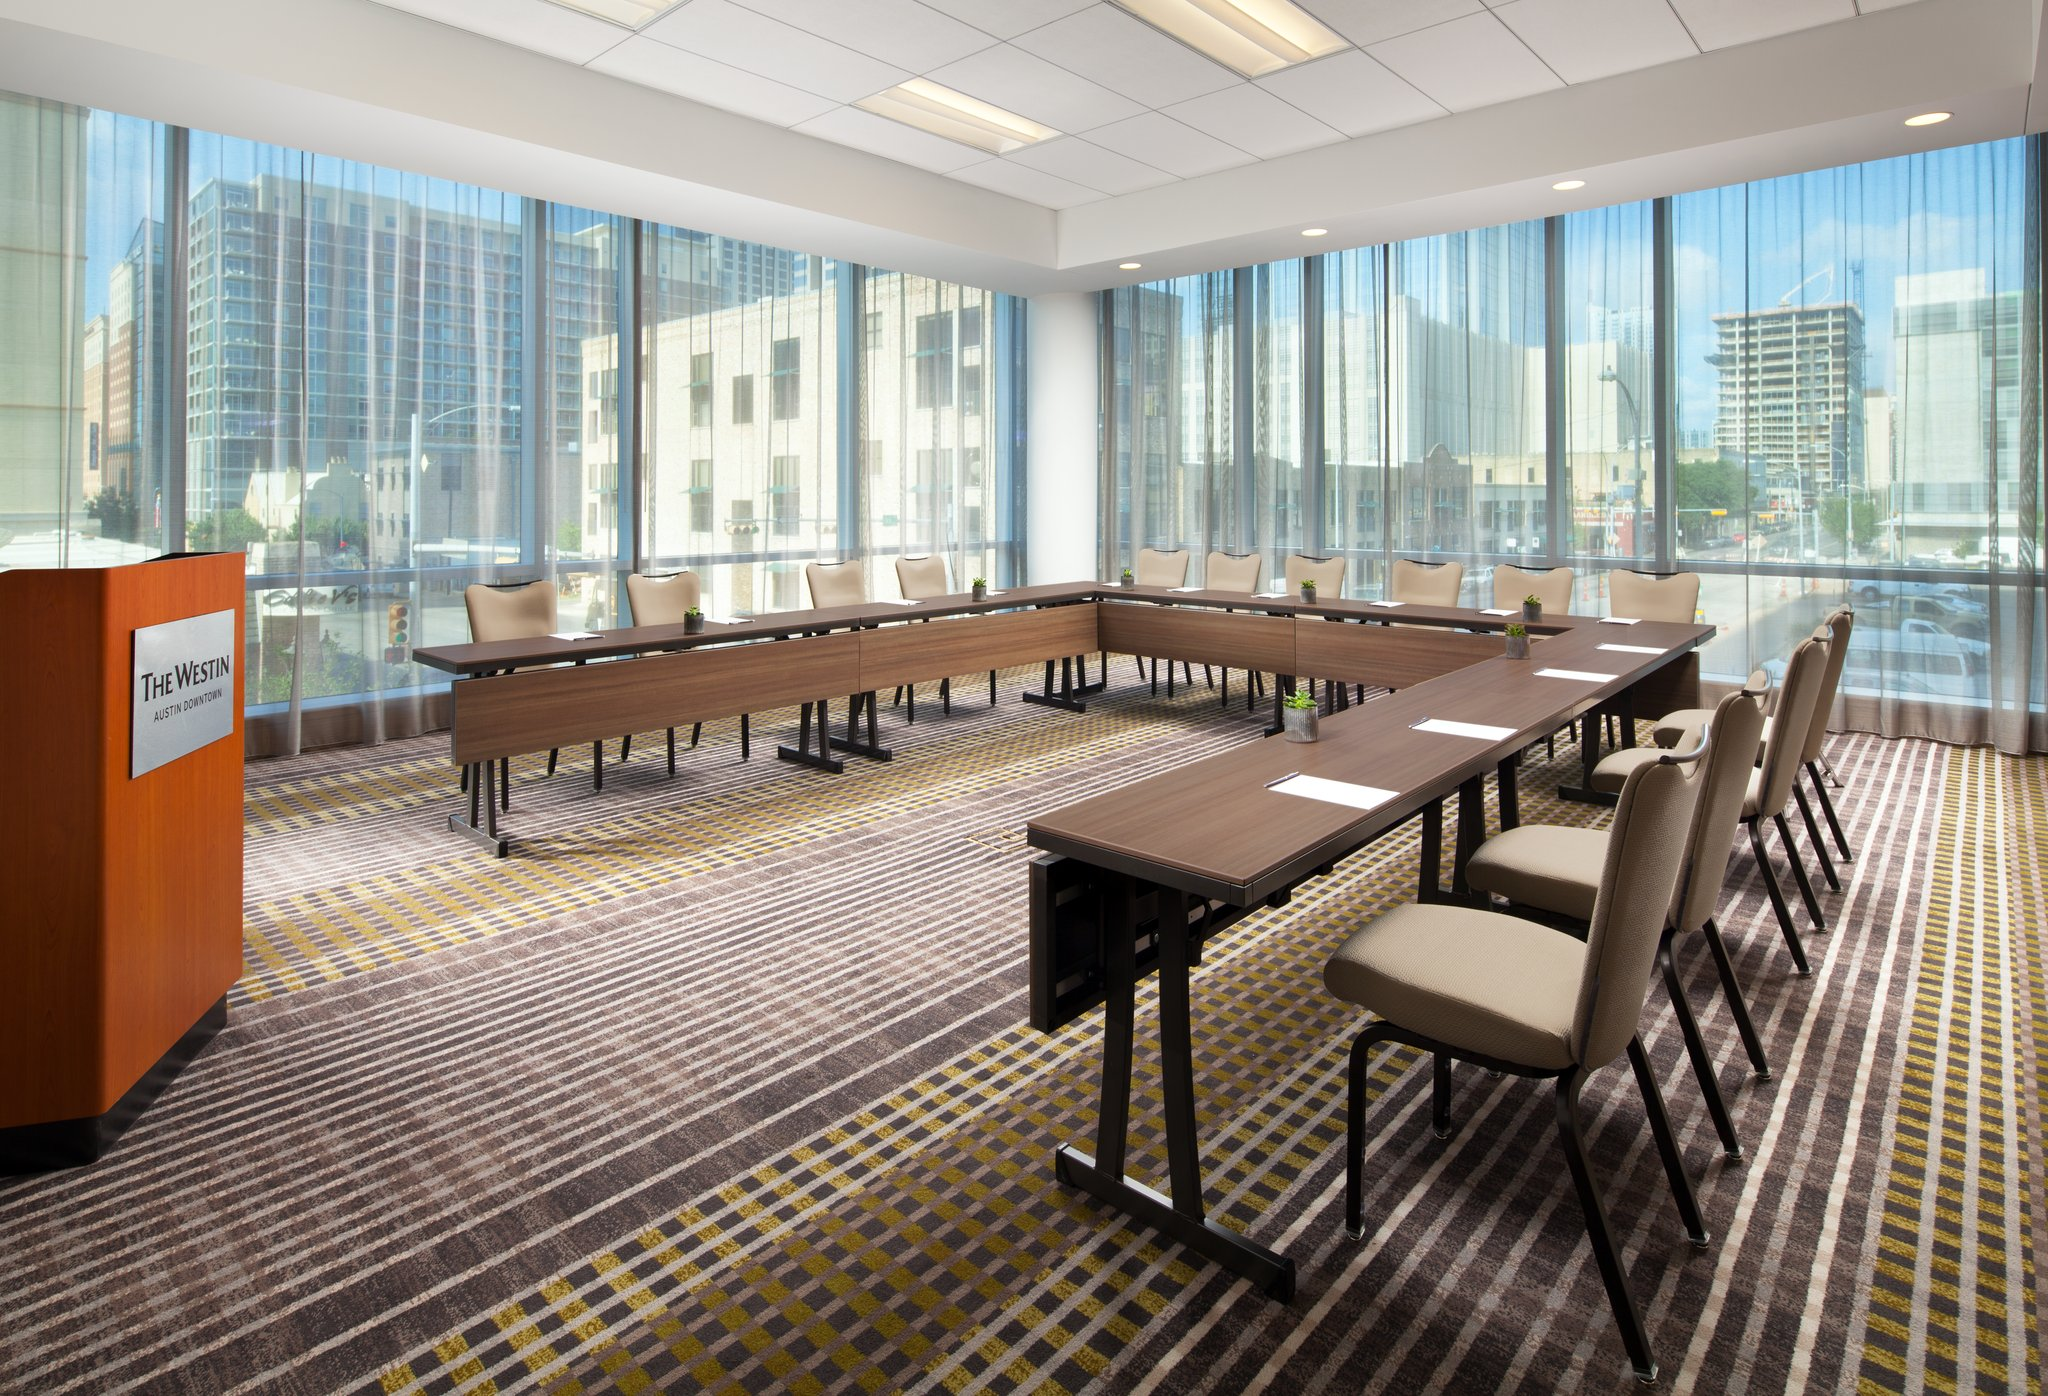 Meetings and Events at The Westin Austin Downtown, Austin, TX, US on design basics house plans, wood house plans, european house plans, nelson home builders, sater design collection house plans, nelson home designs plans, group home building plans,